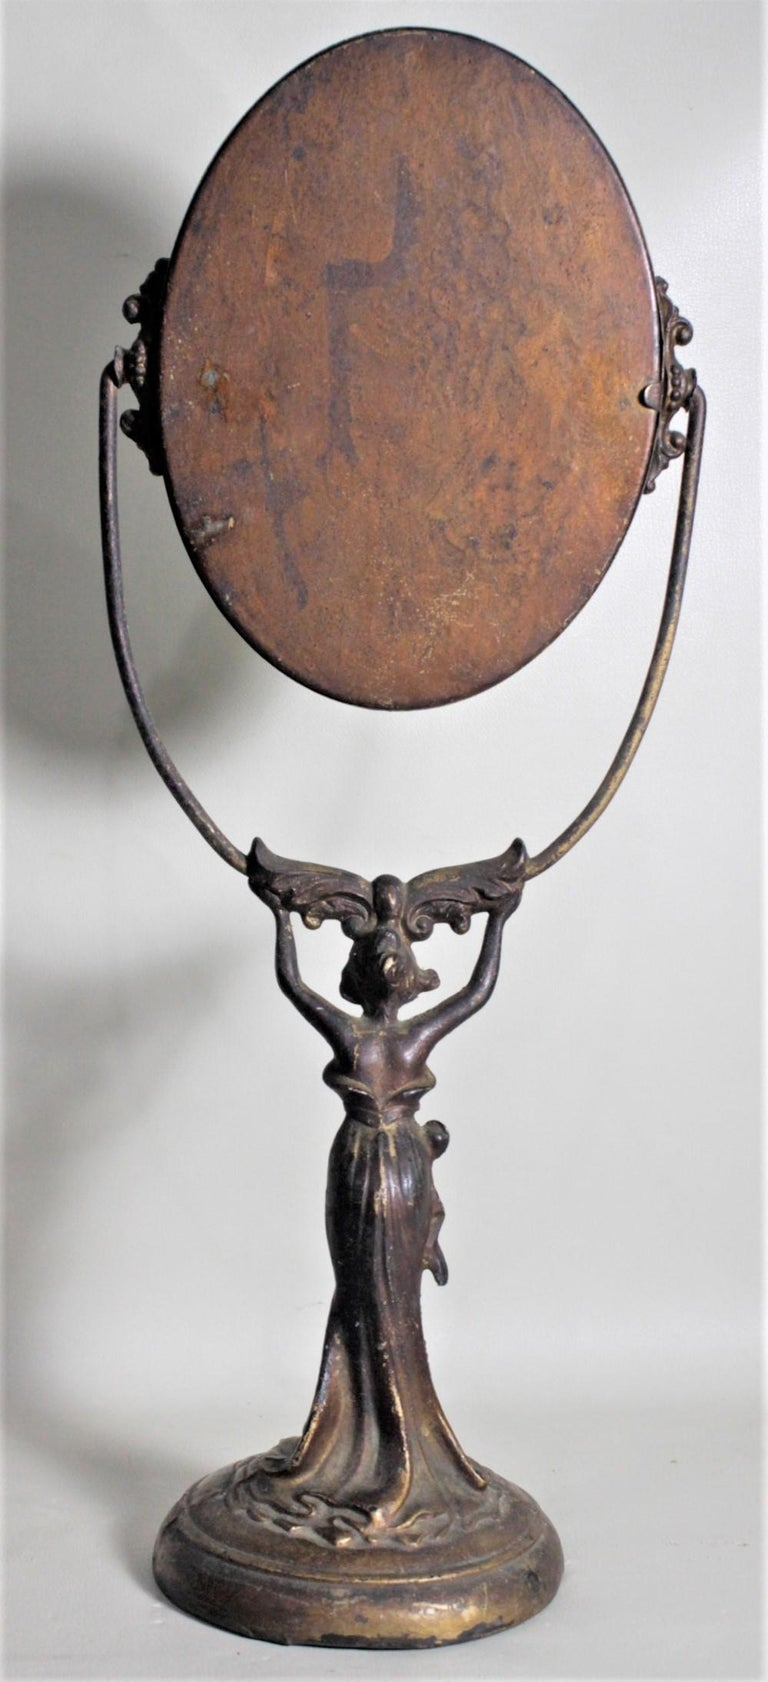 19th Century Antique Art Nouveau Cast Figural Metal Pedestal Ladies Dresser or Vanity Mirror For Sale